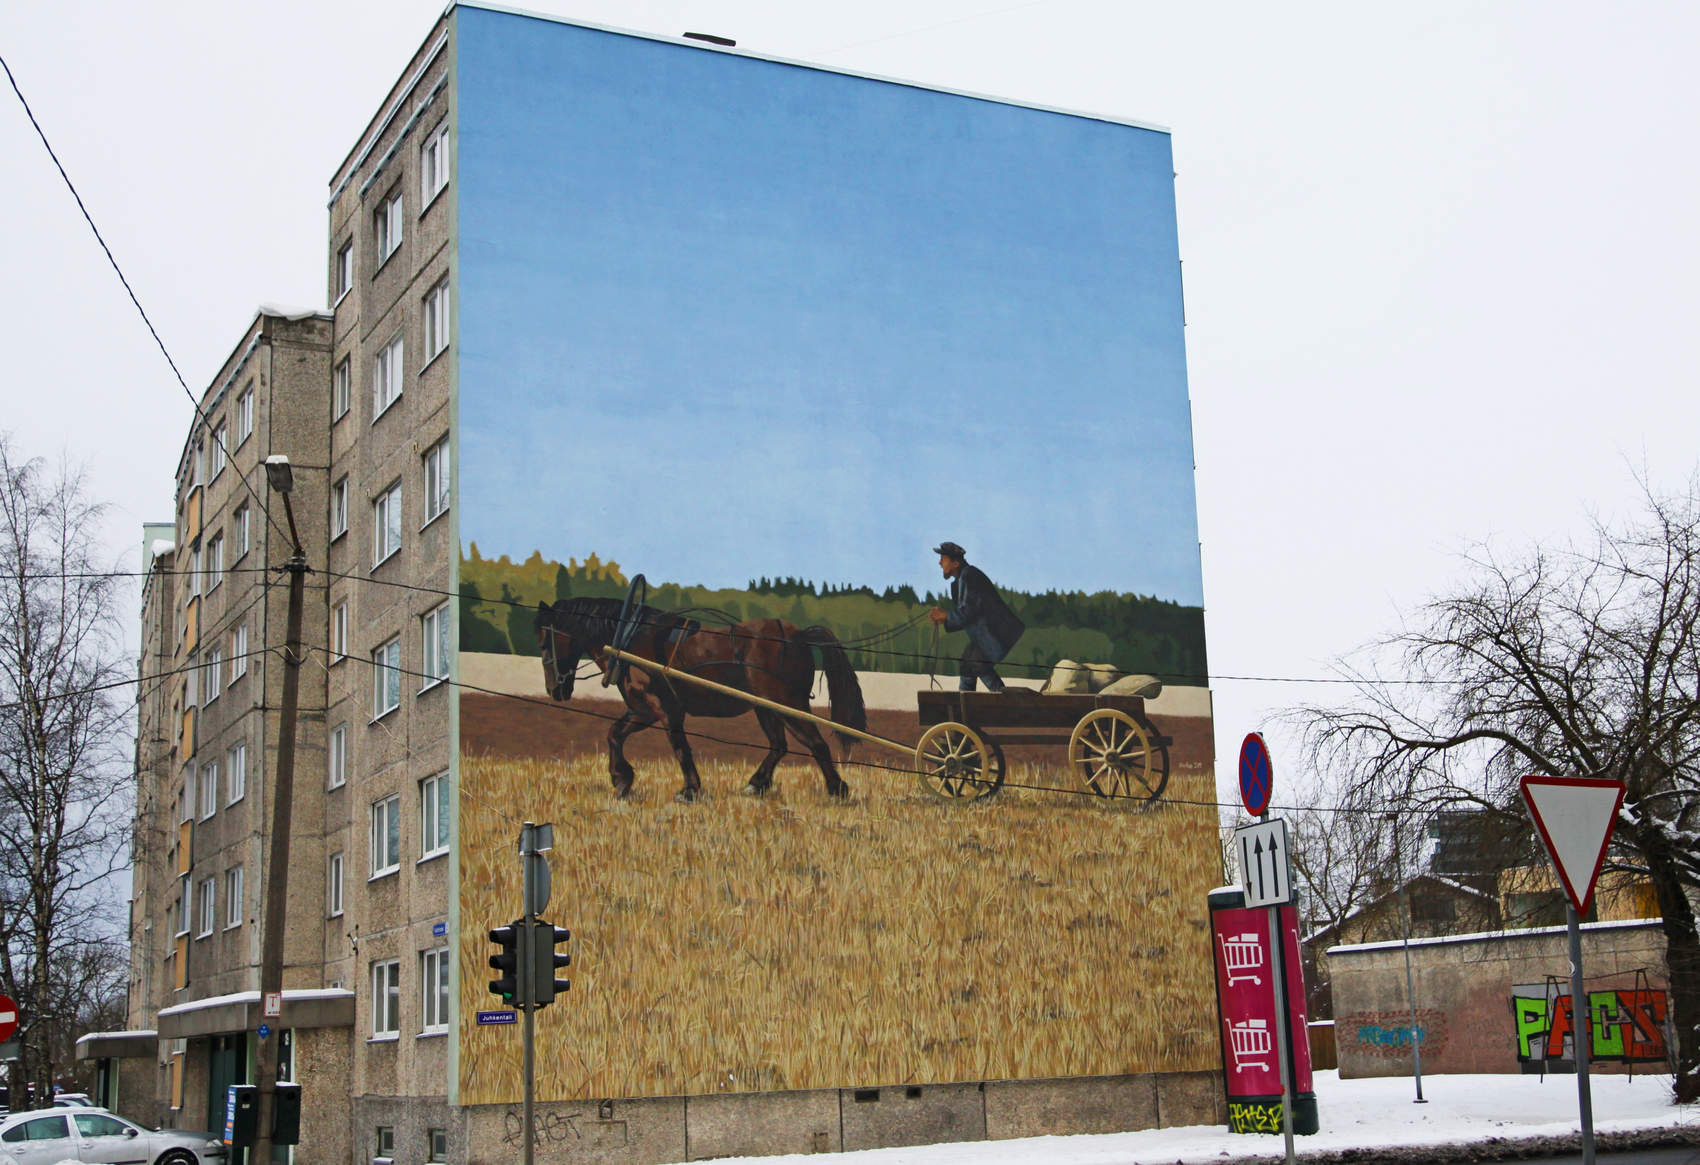 A horse and a carriage - street art by Edgar Tedresaar in Tallinn, Estonia Photo: Mairit Krabbi